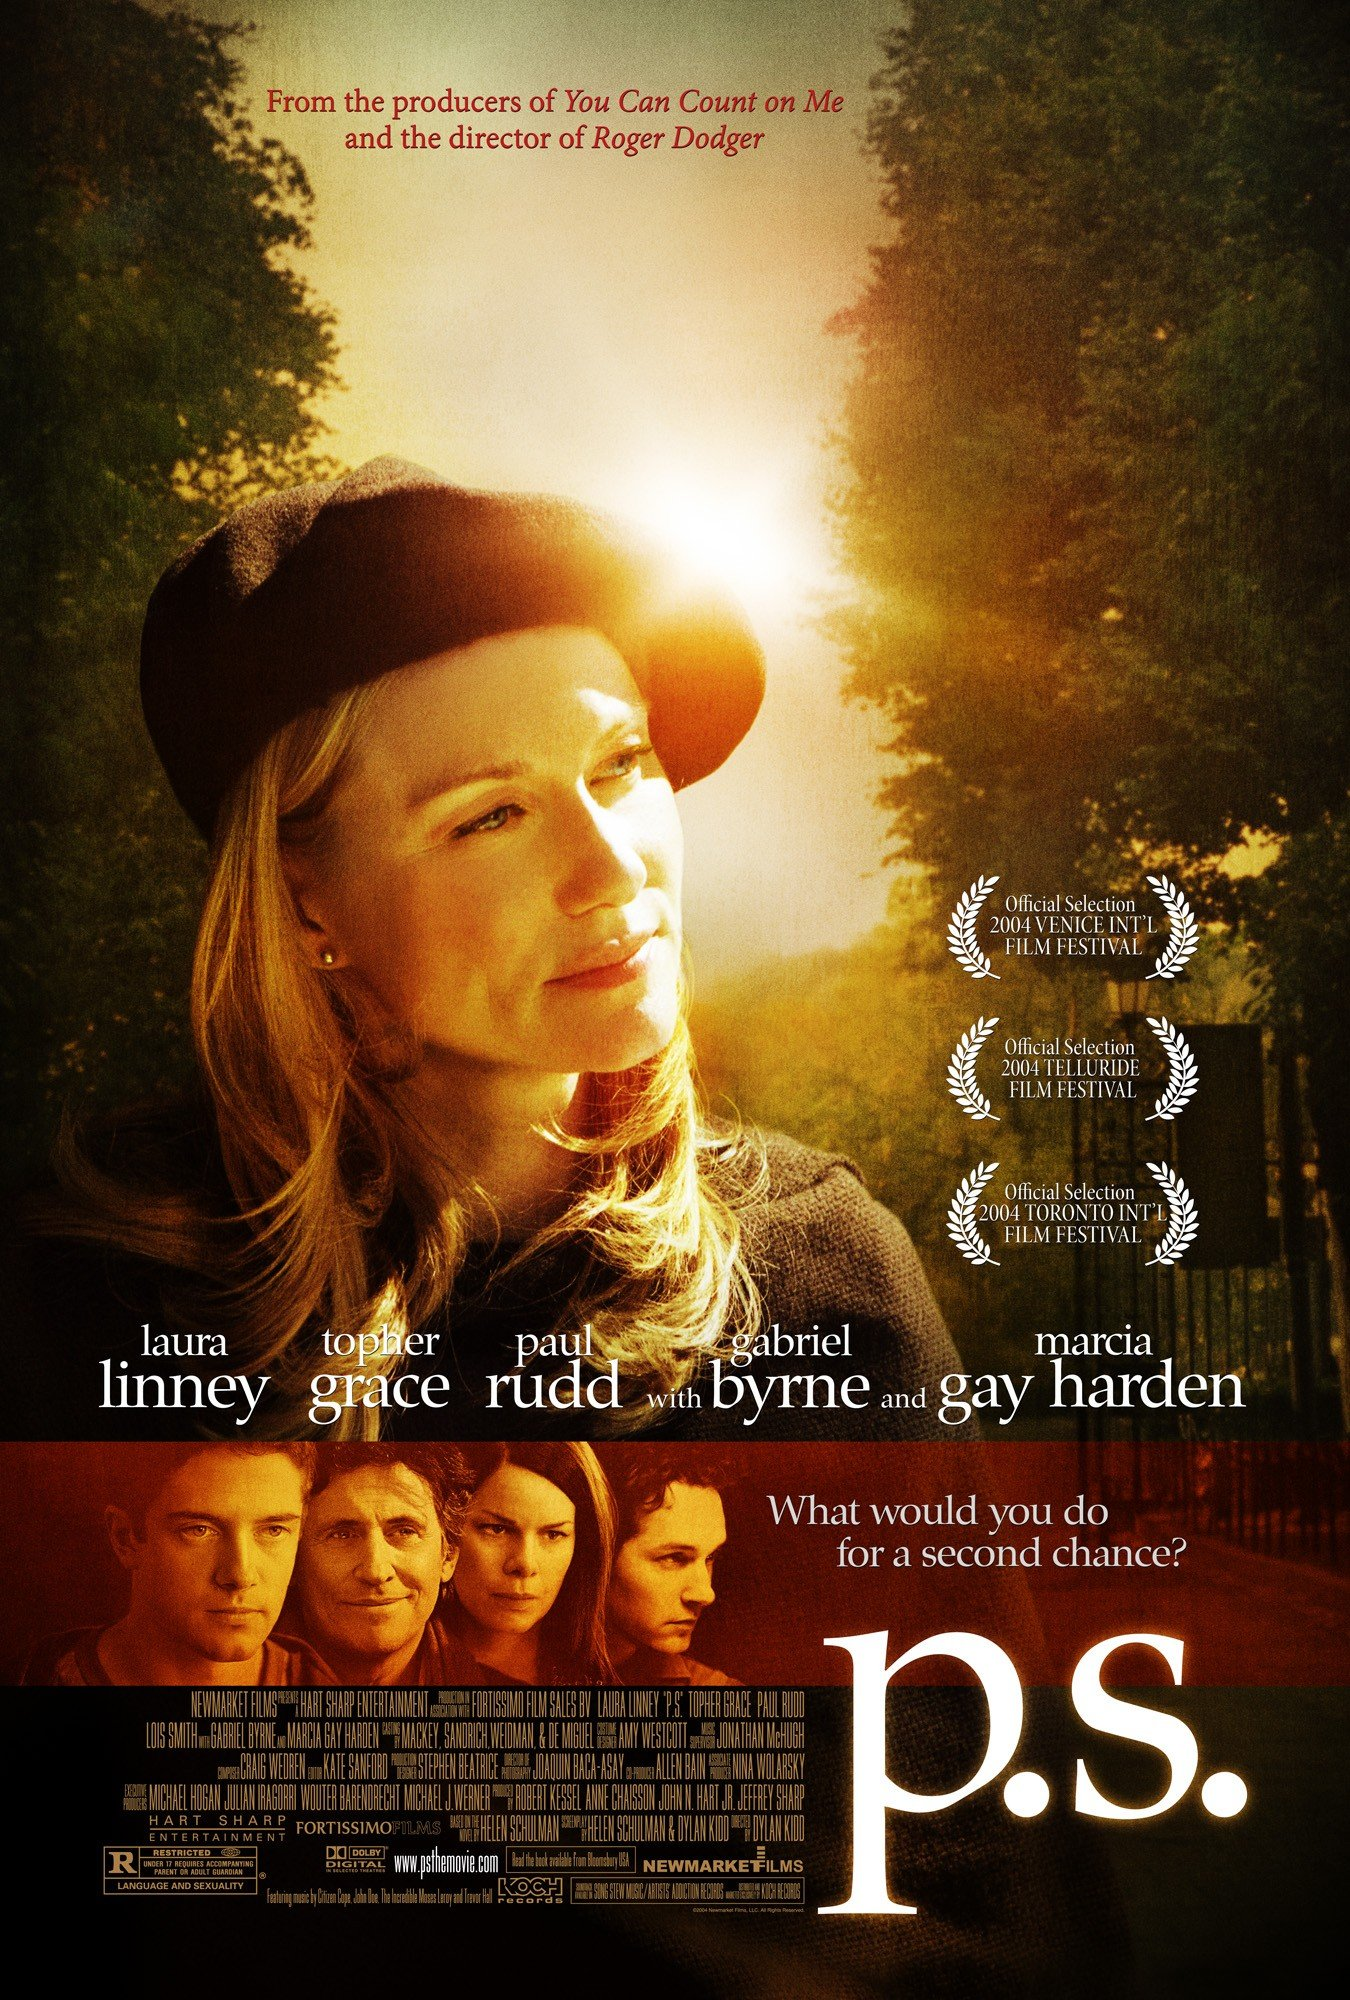 P.S. the Movie Poster